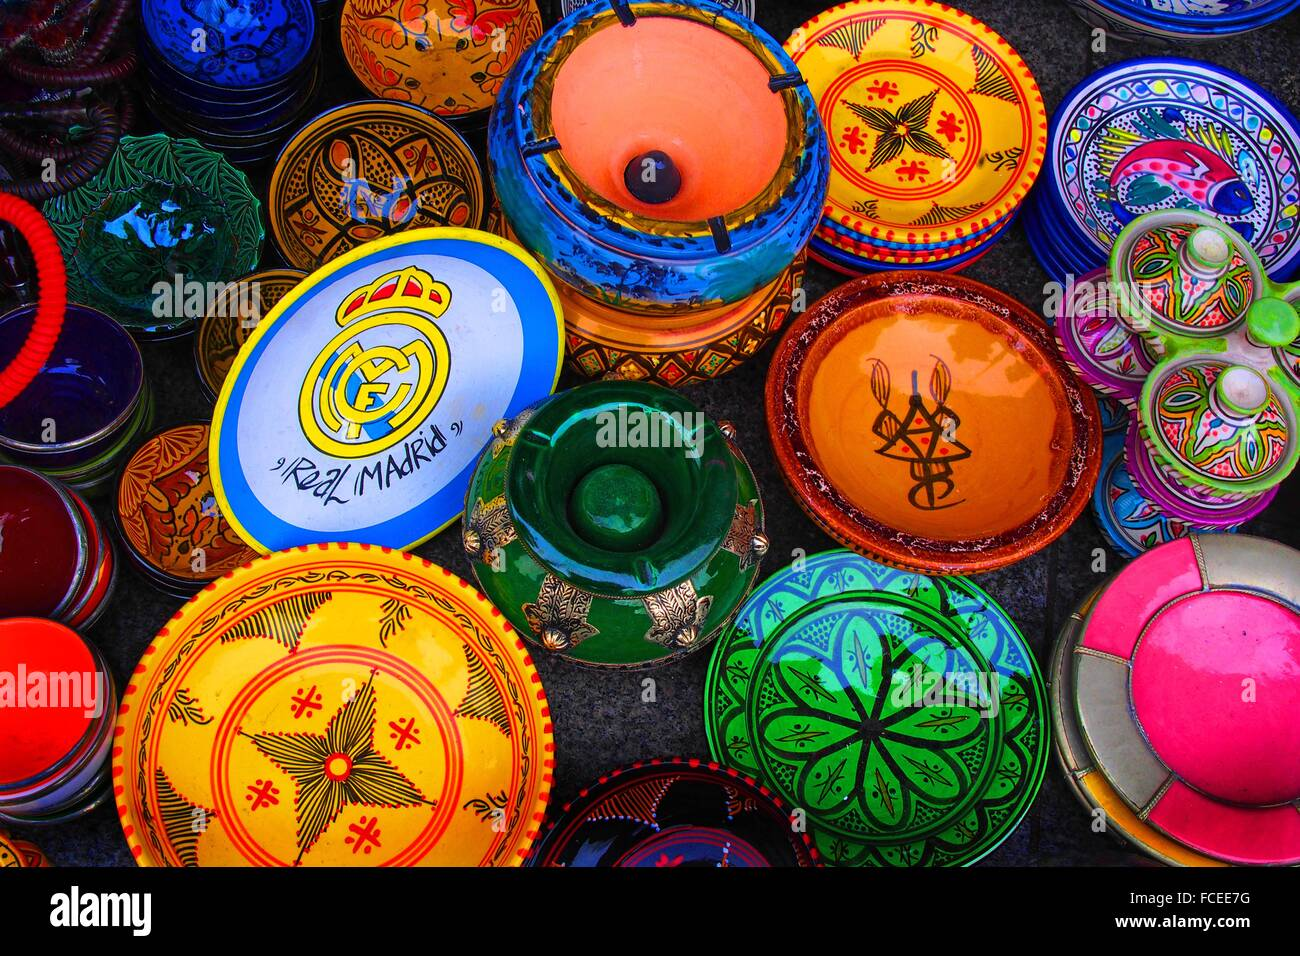 Ceramics with islamic designs and a plate with Real Madrid football team´s logo, Morocco - Stock Image